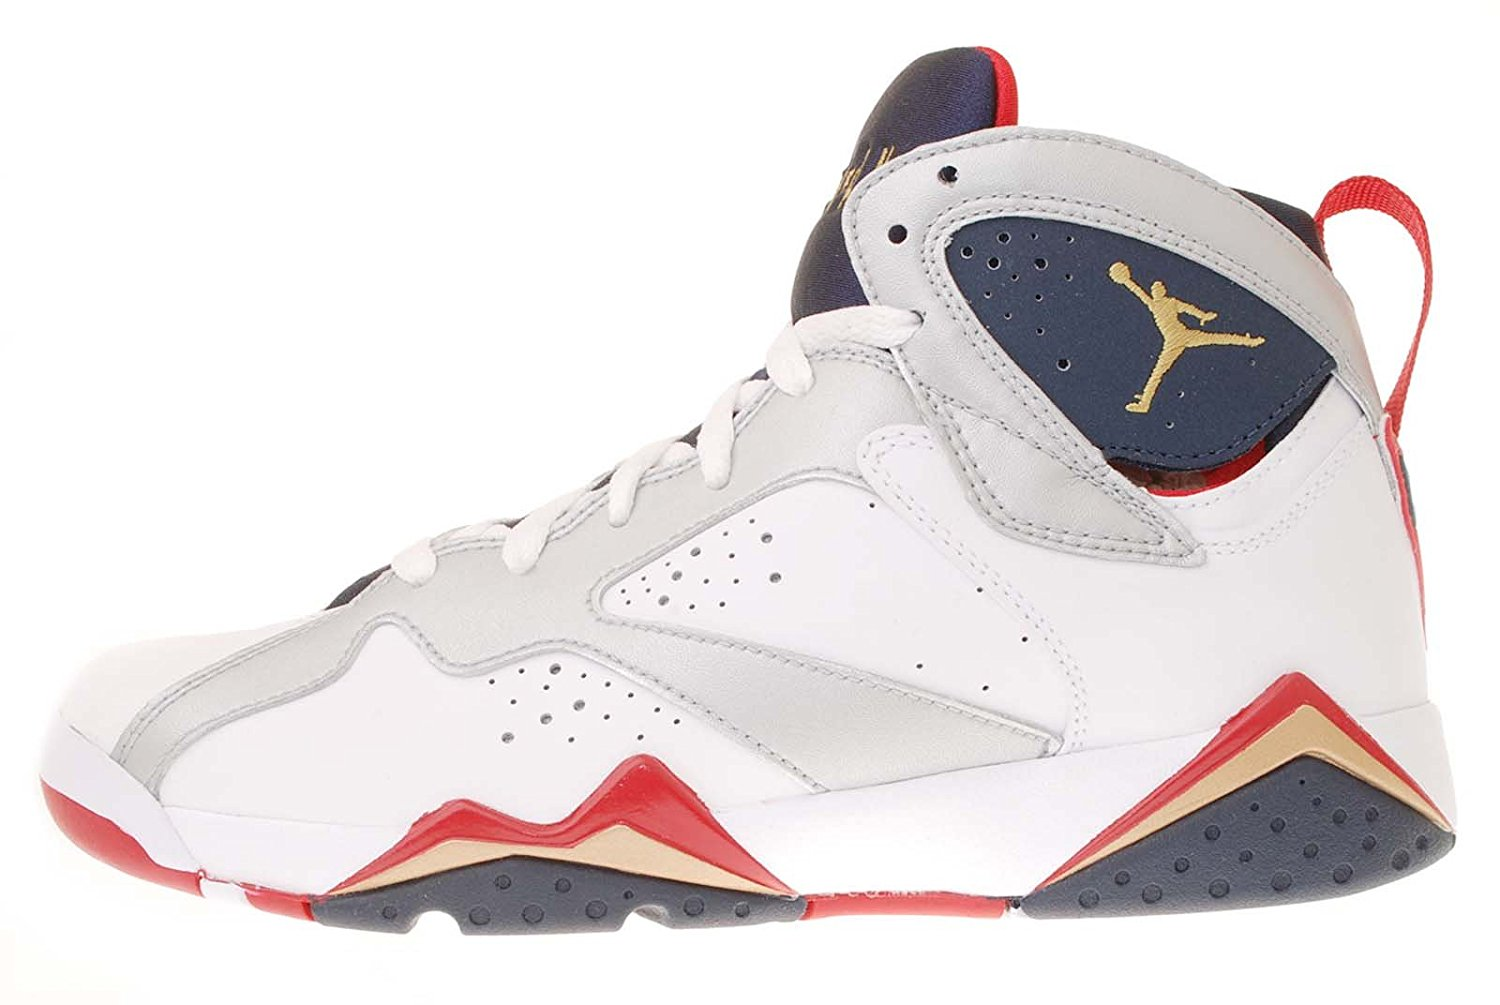 42b64b3e29d7 Nike Air Jordan 7 VII Retro GS Olympic Edition White 2012 Youth Kid 9  304774135